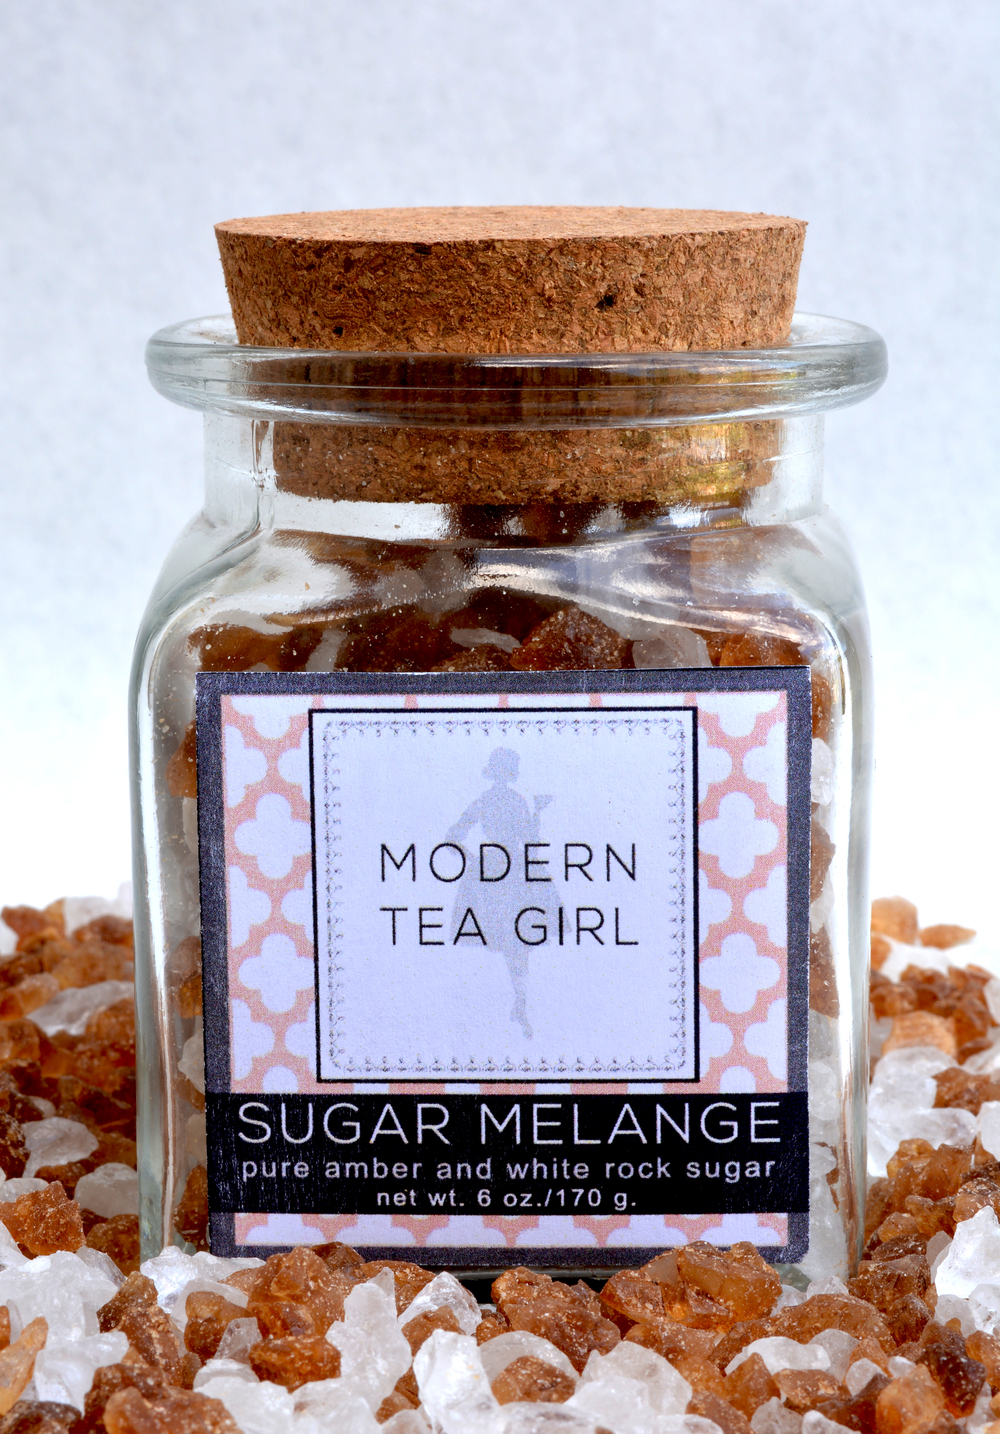 Modern Tea Girl Sugar Melange